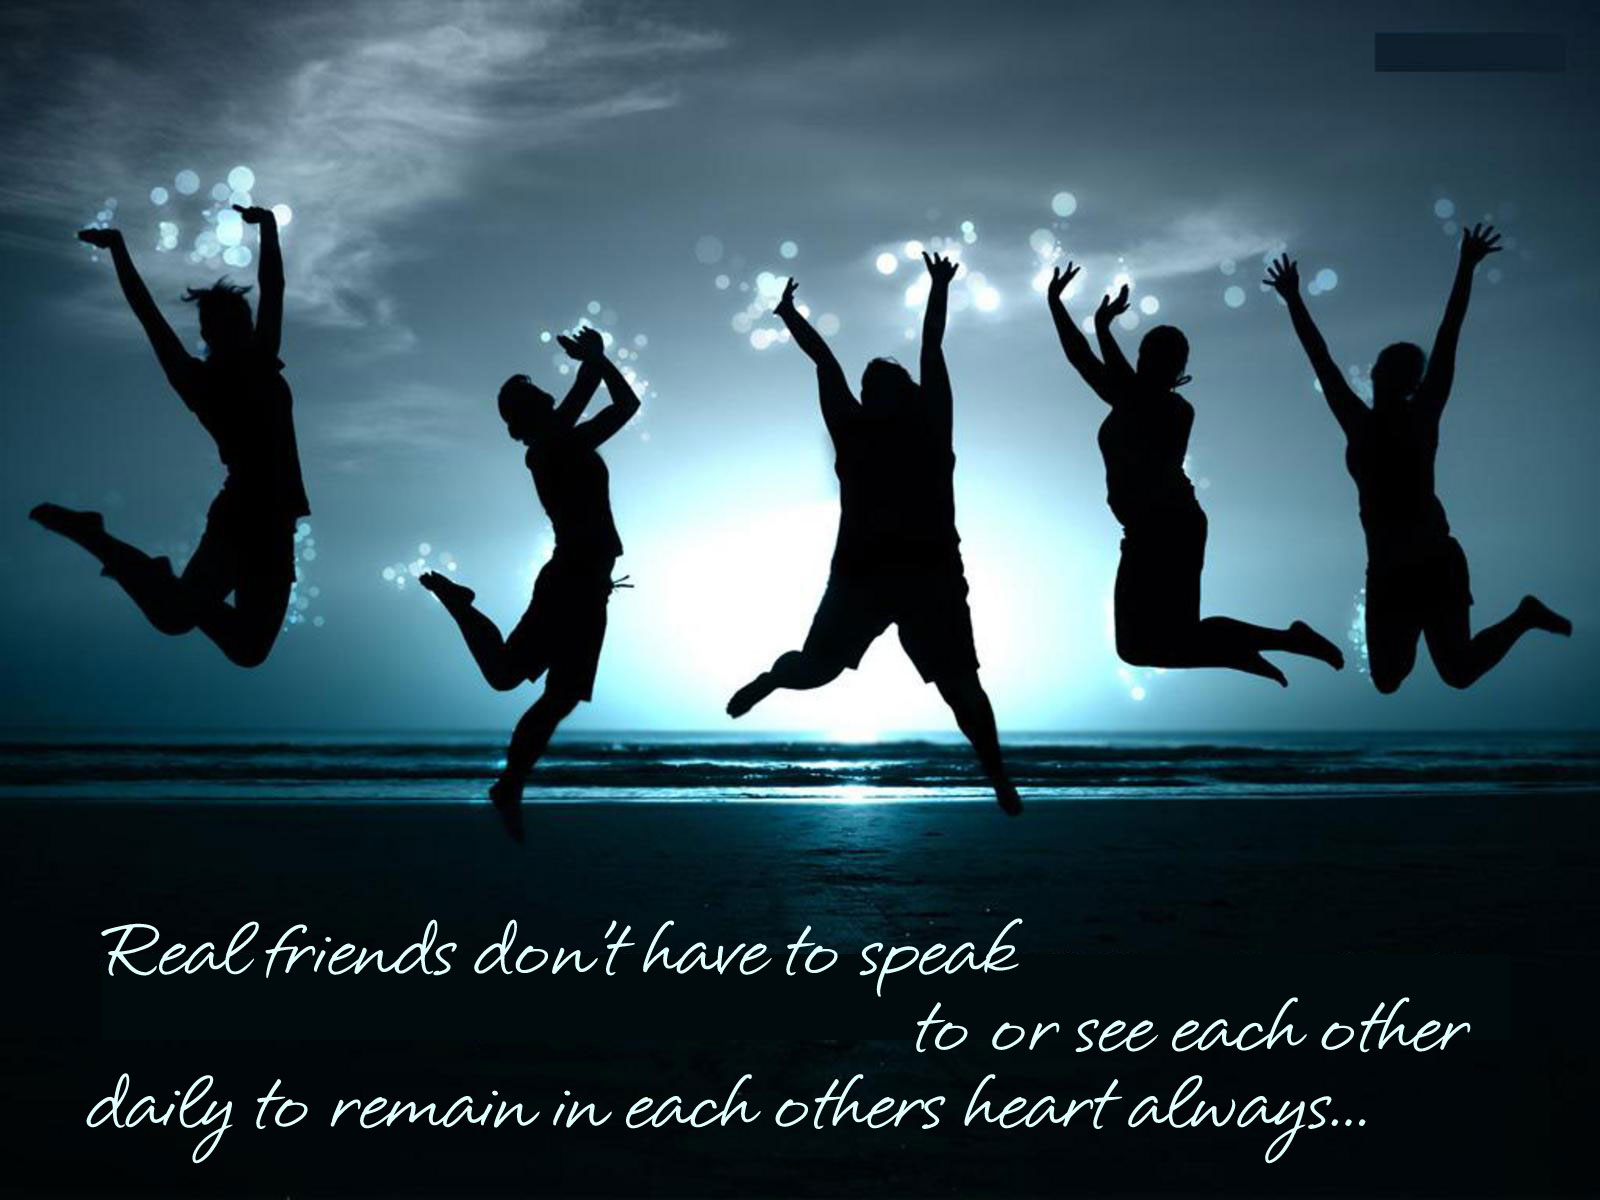 real friends don't have to speak to or see each other daily to remain in each others heart always.